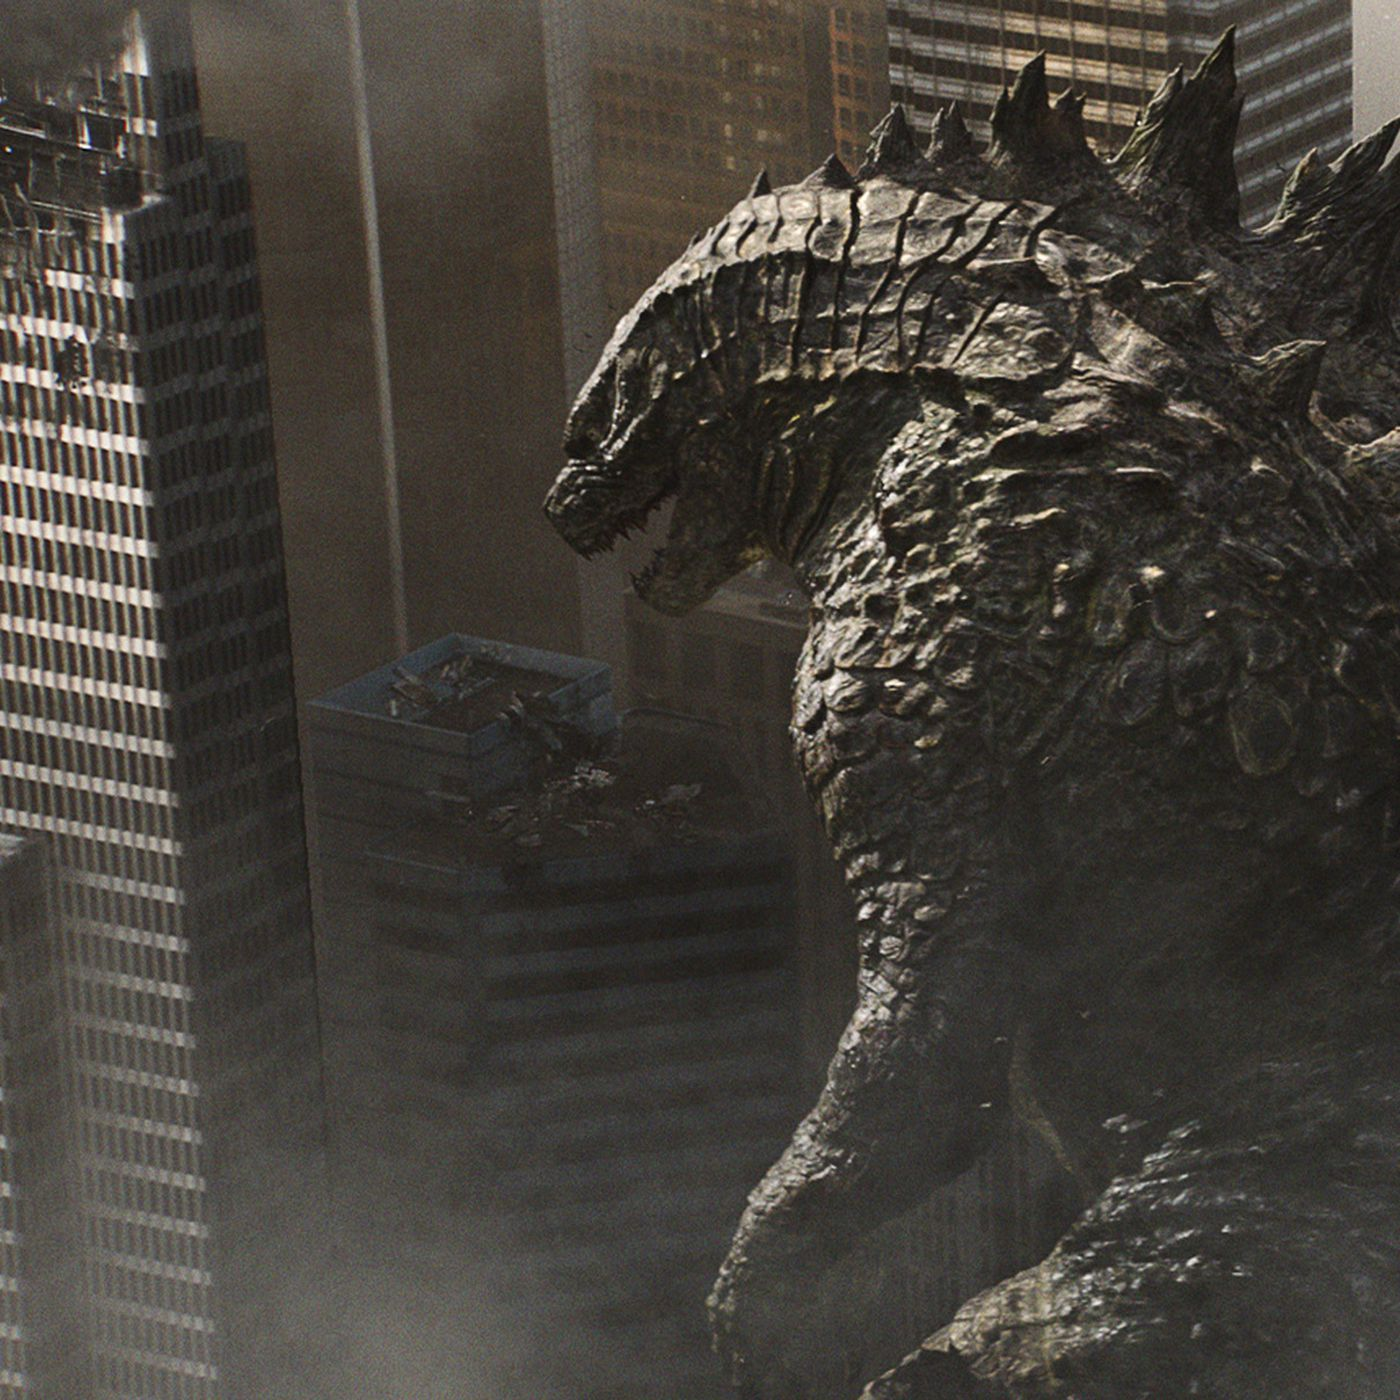 Watch a detailed explanation of how America ruined Godzilla